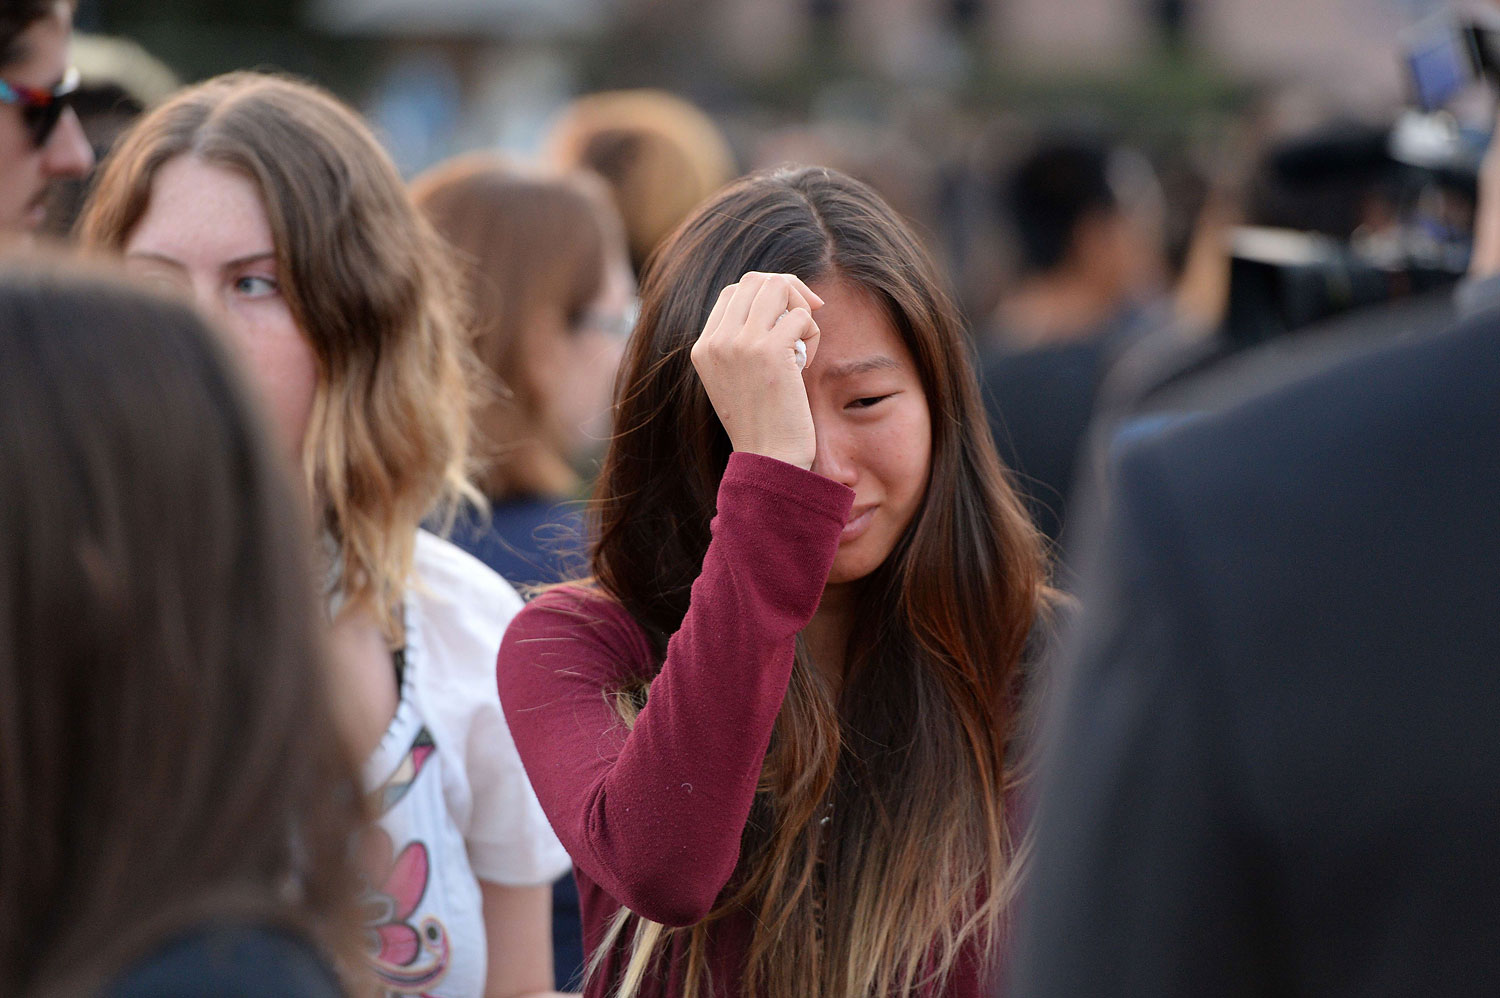 A student weeps during a candlelight vigil on May 24, 2014, for those affected by a killing spree in Isla Vista, on the University of California, Santa Barbara, campus